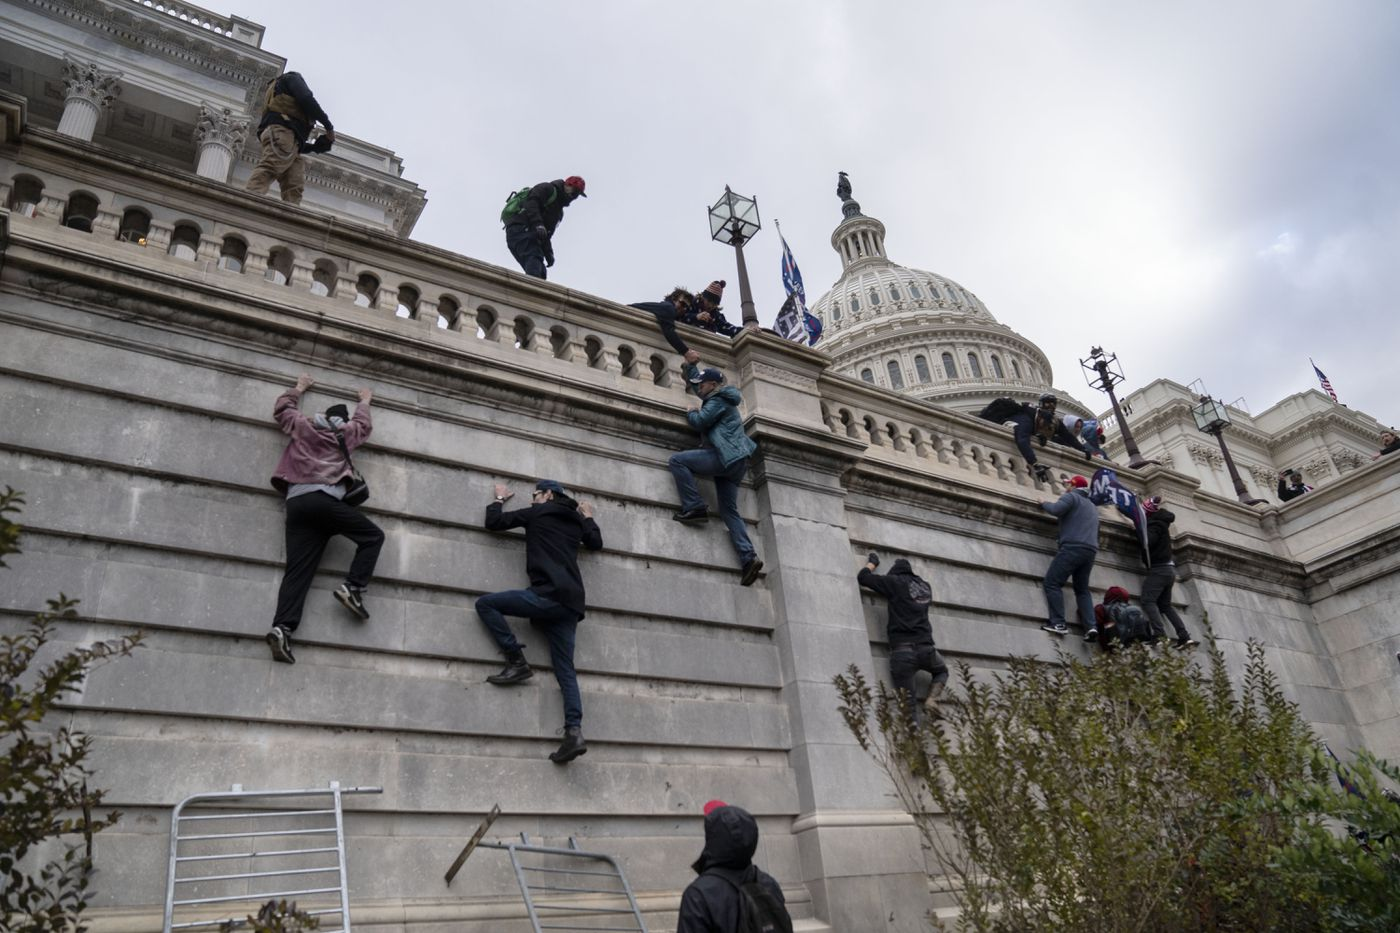 Supporters of President Trump scaled the walls on the Senate side of the US Capitol and gained access inside the building during a massive protest in Washington on Jan. 6, 2021. Washington Post photo by Michael Robinson Chavez.